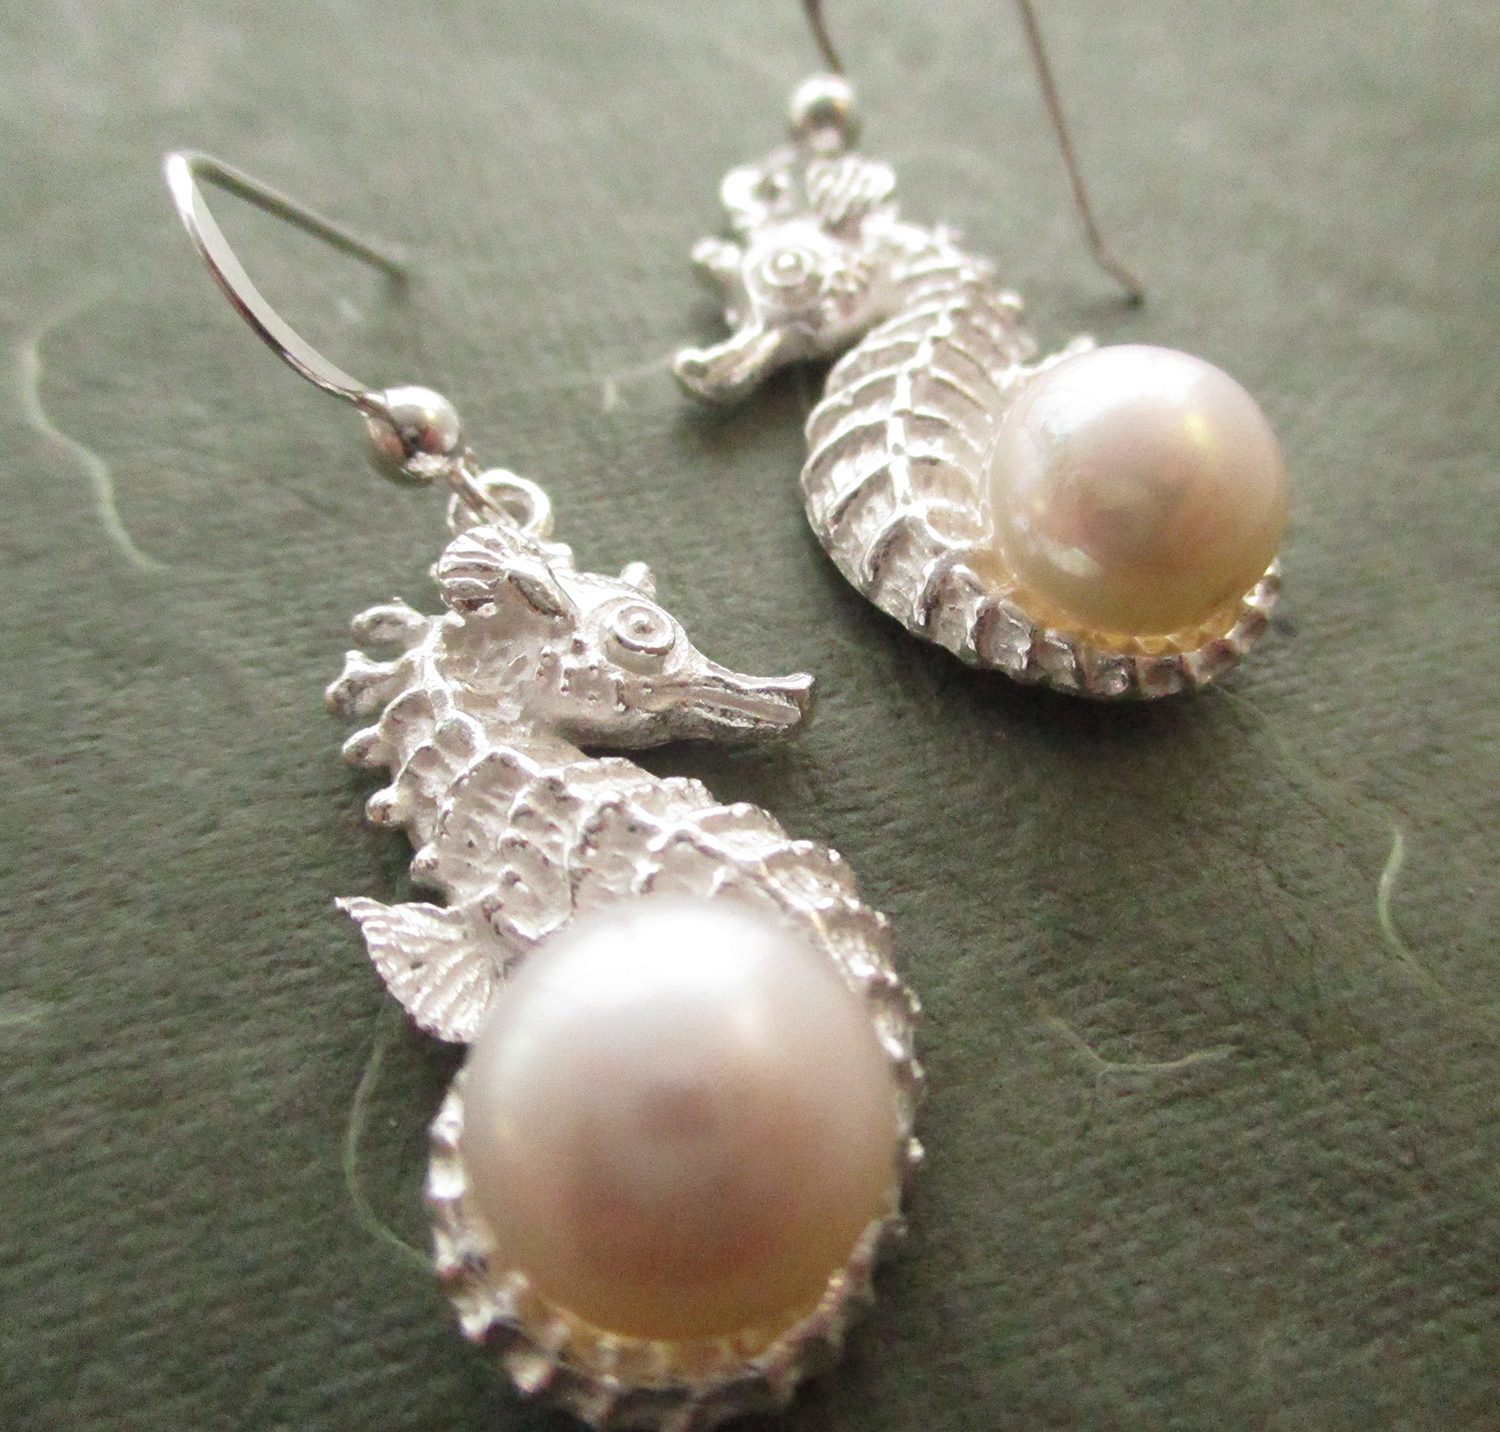 Seahorse Earrings Sold by Dazzling Jewellers